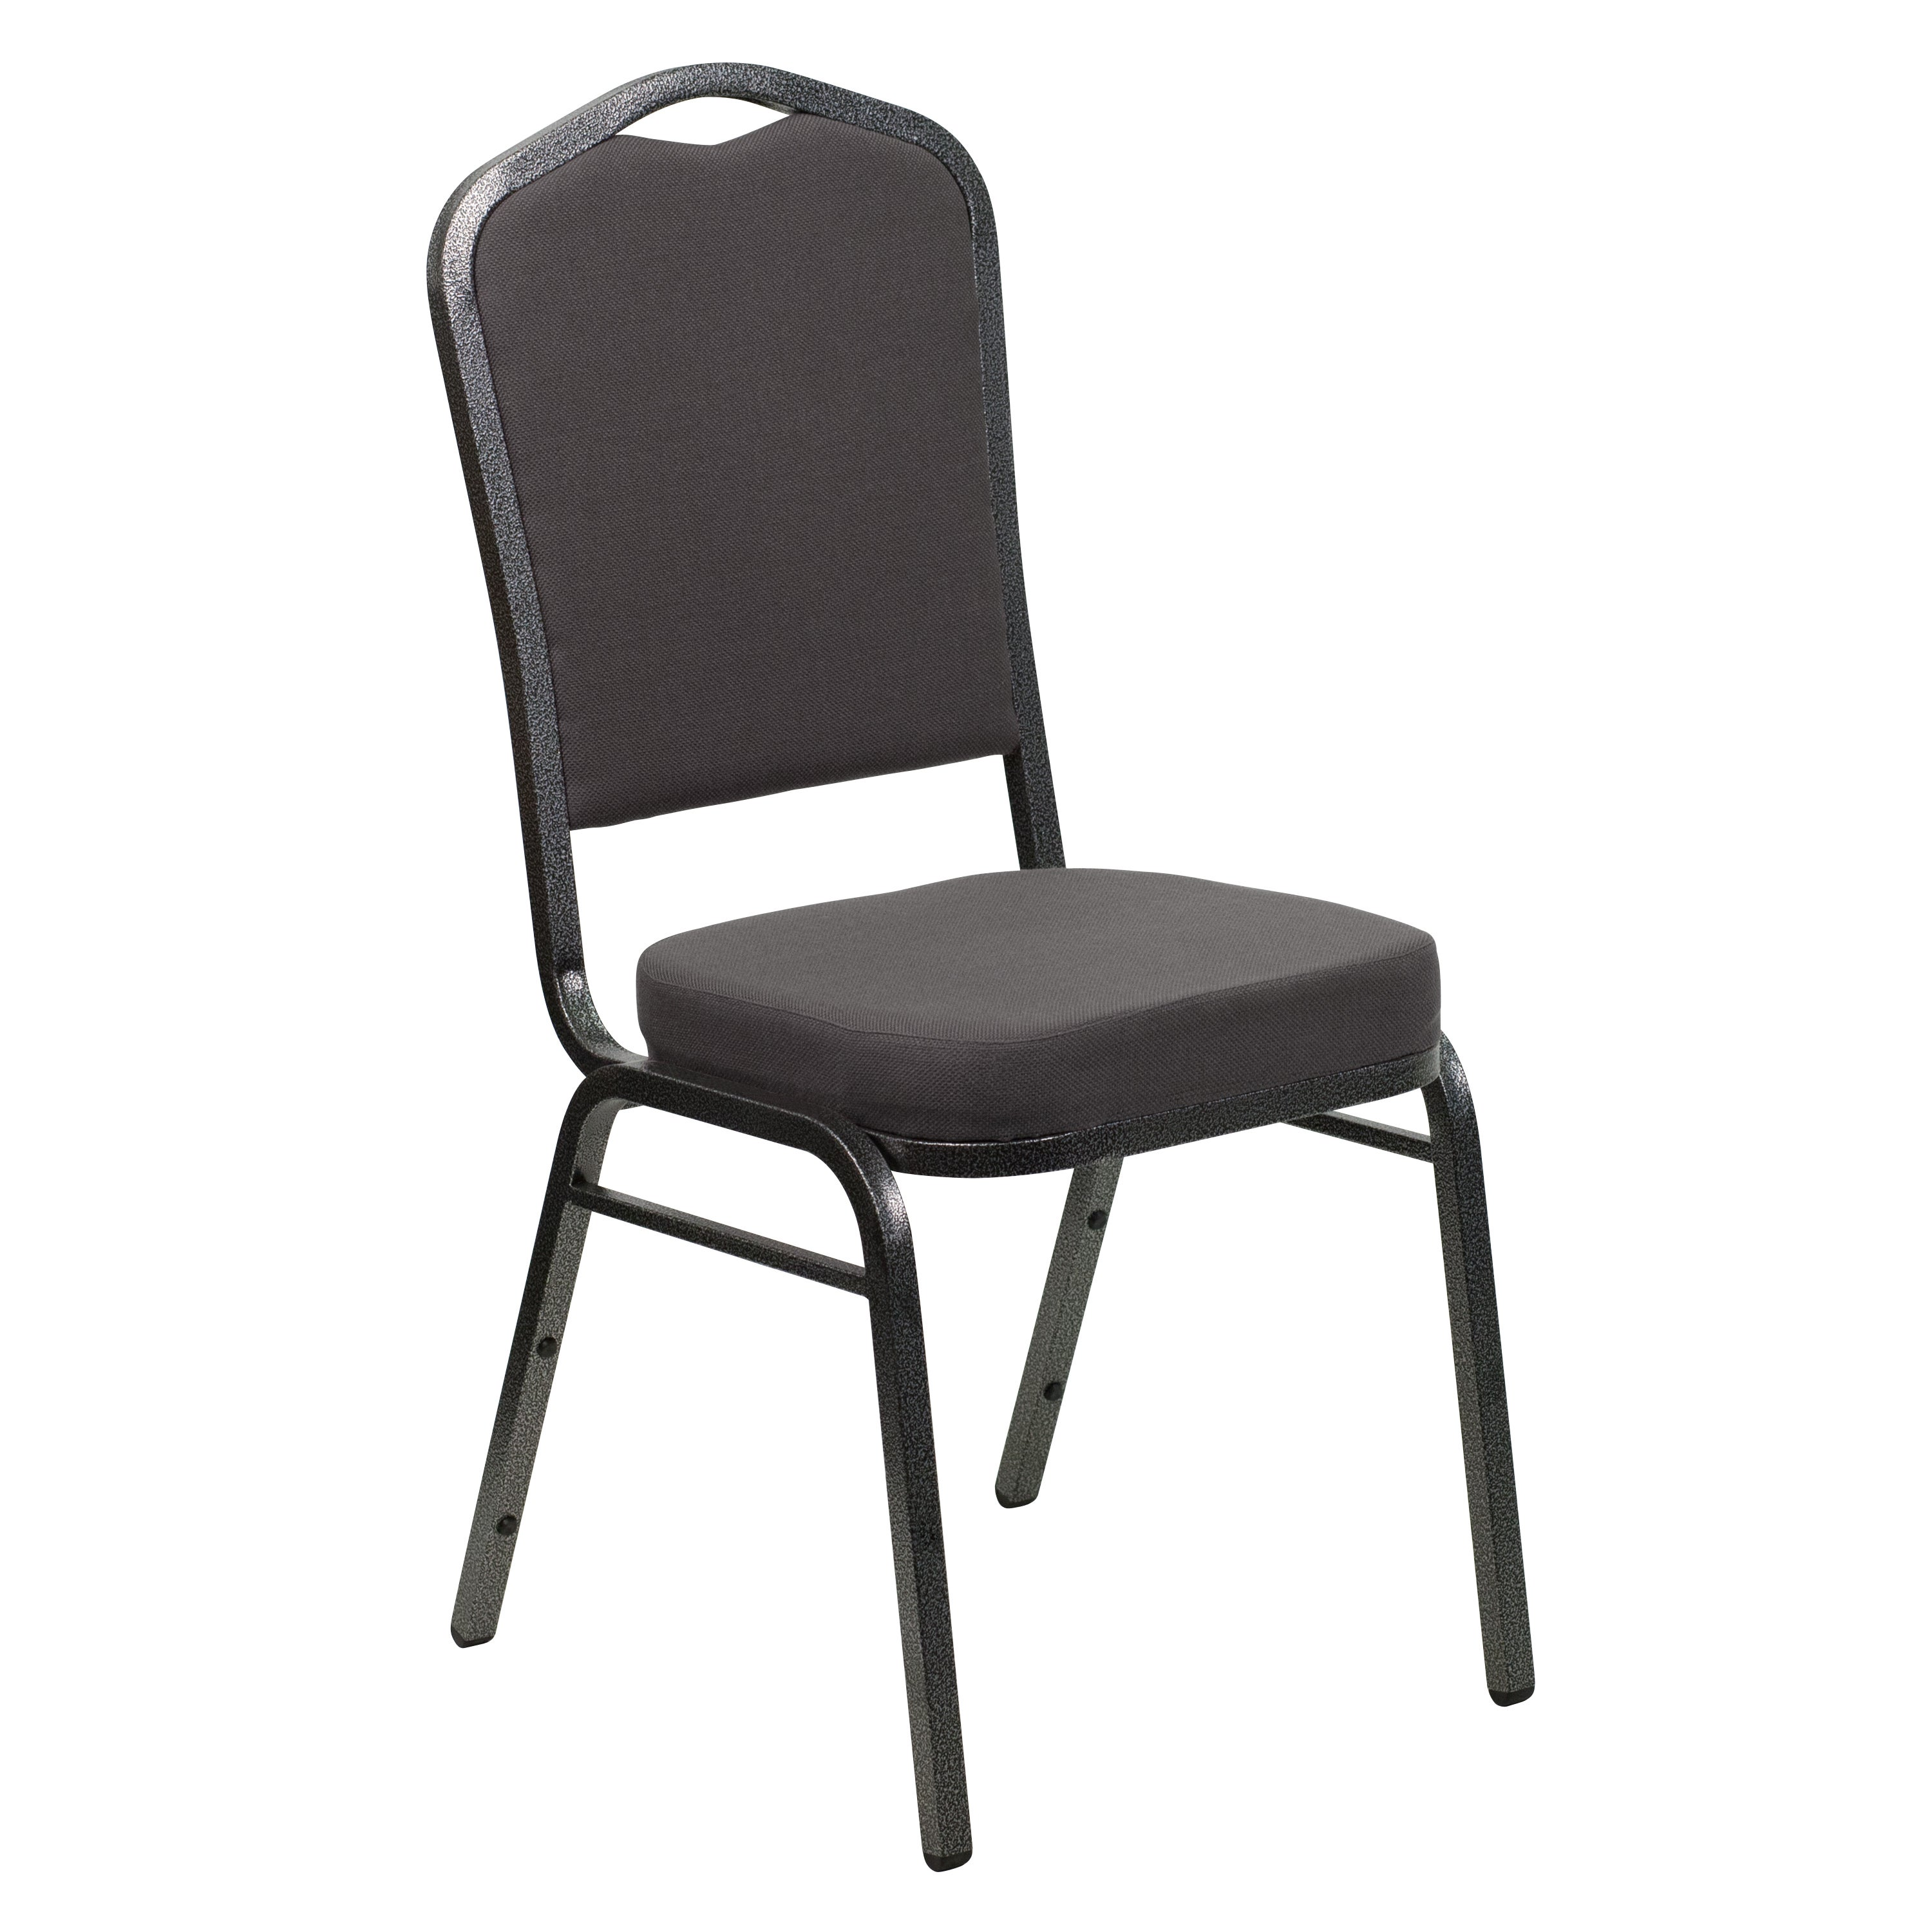 Decor Gray Upholstered Stack Dining Chairs (Decor Gray Up...